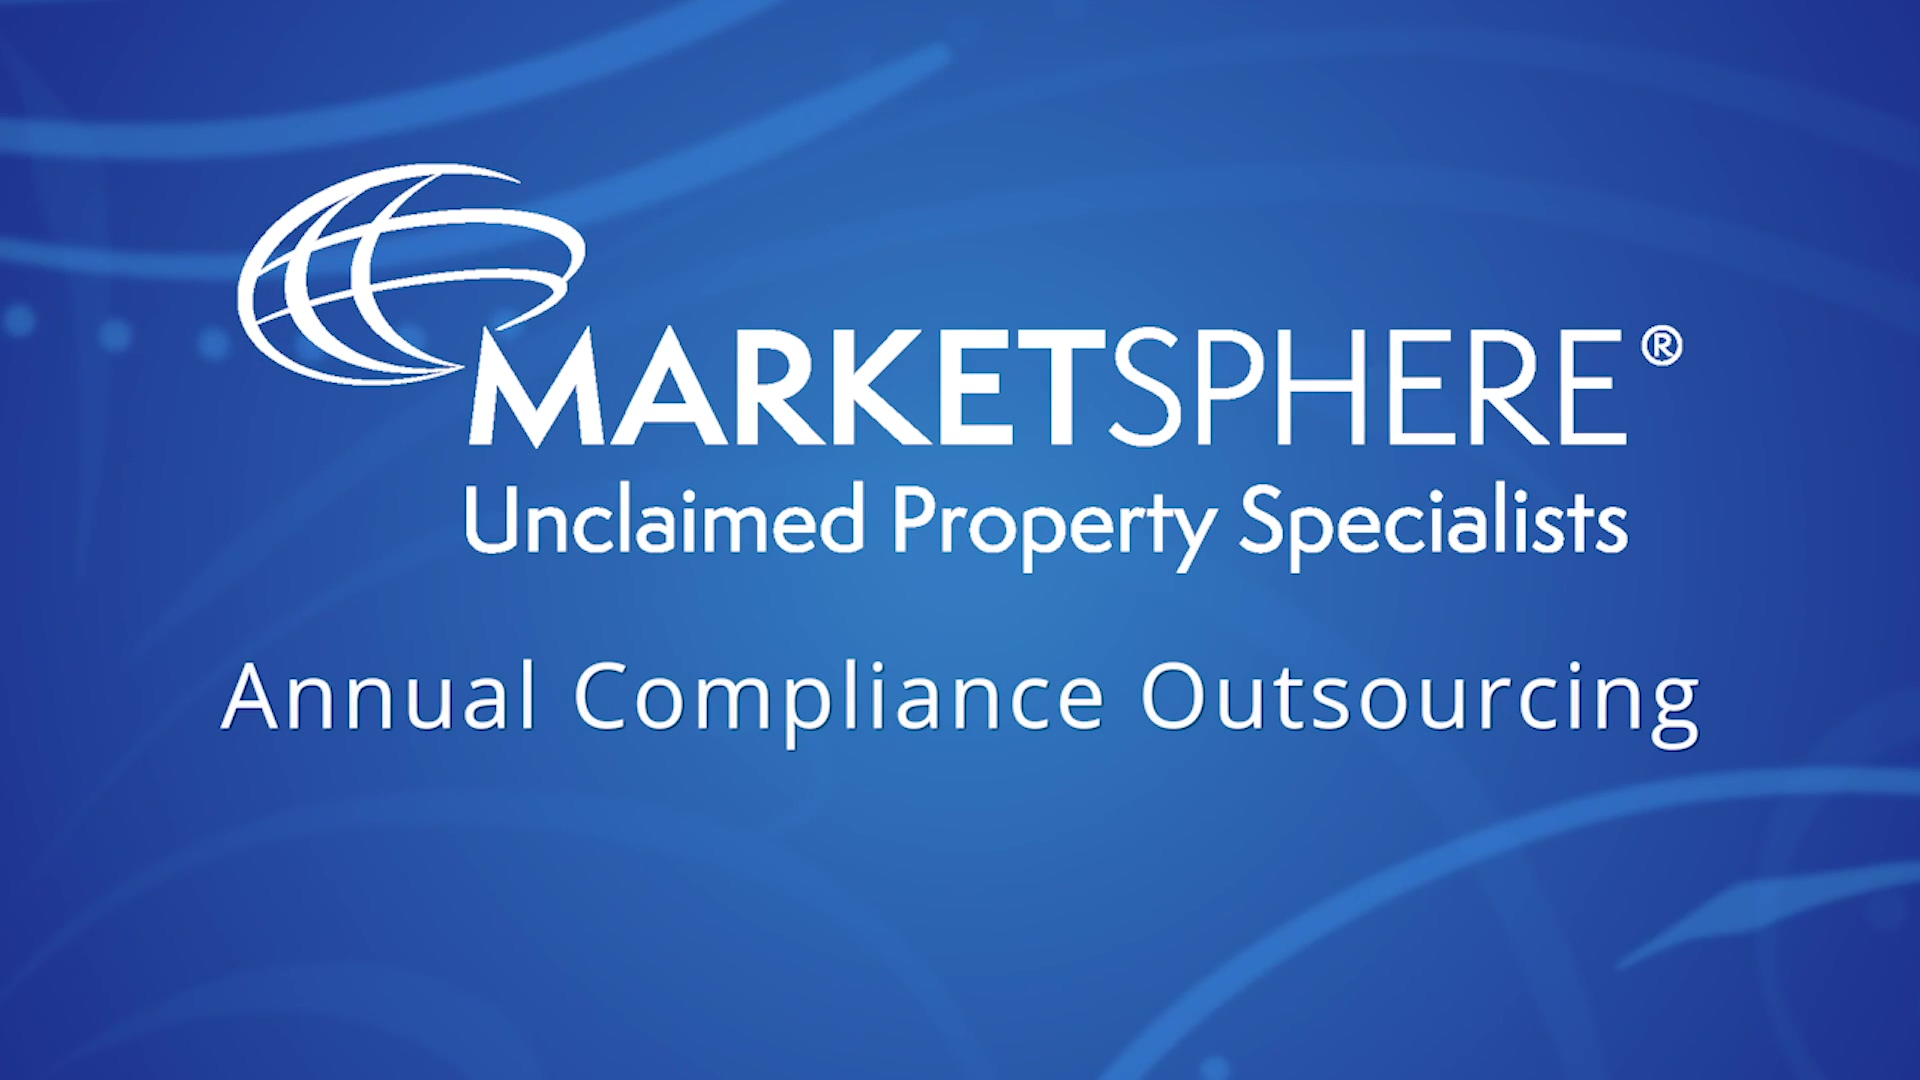 Annual Compliance Outsourcing